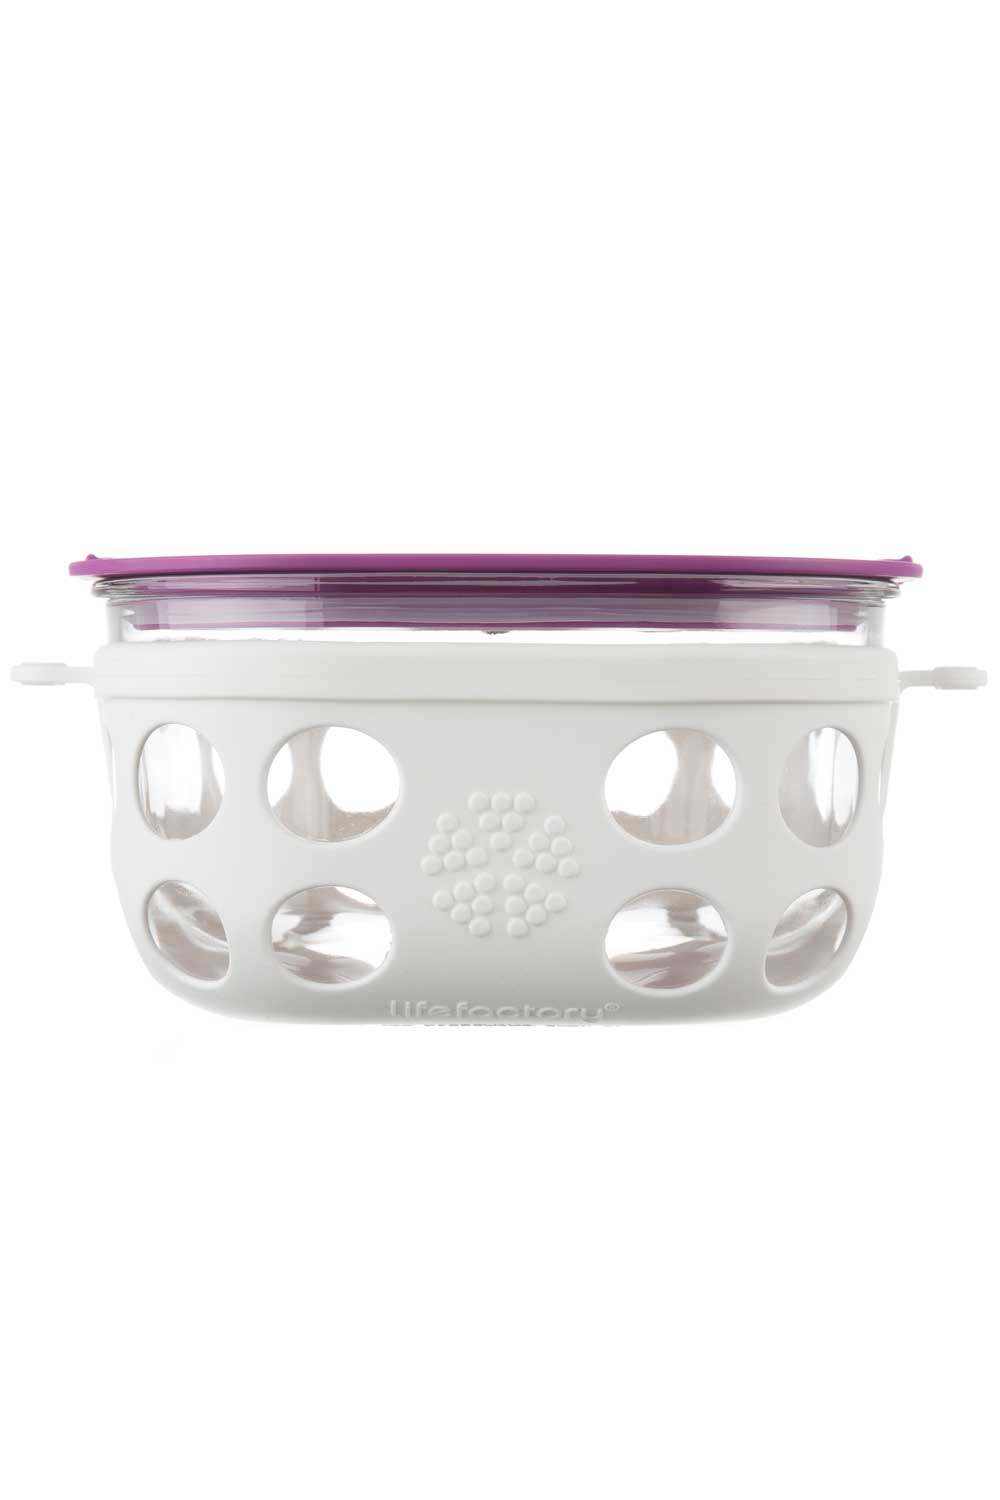 Bake and Take Food Storage Container